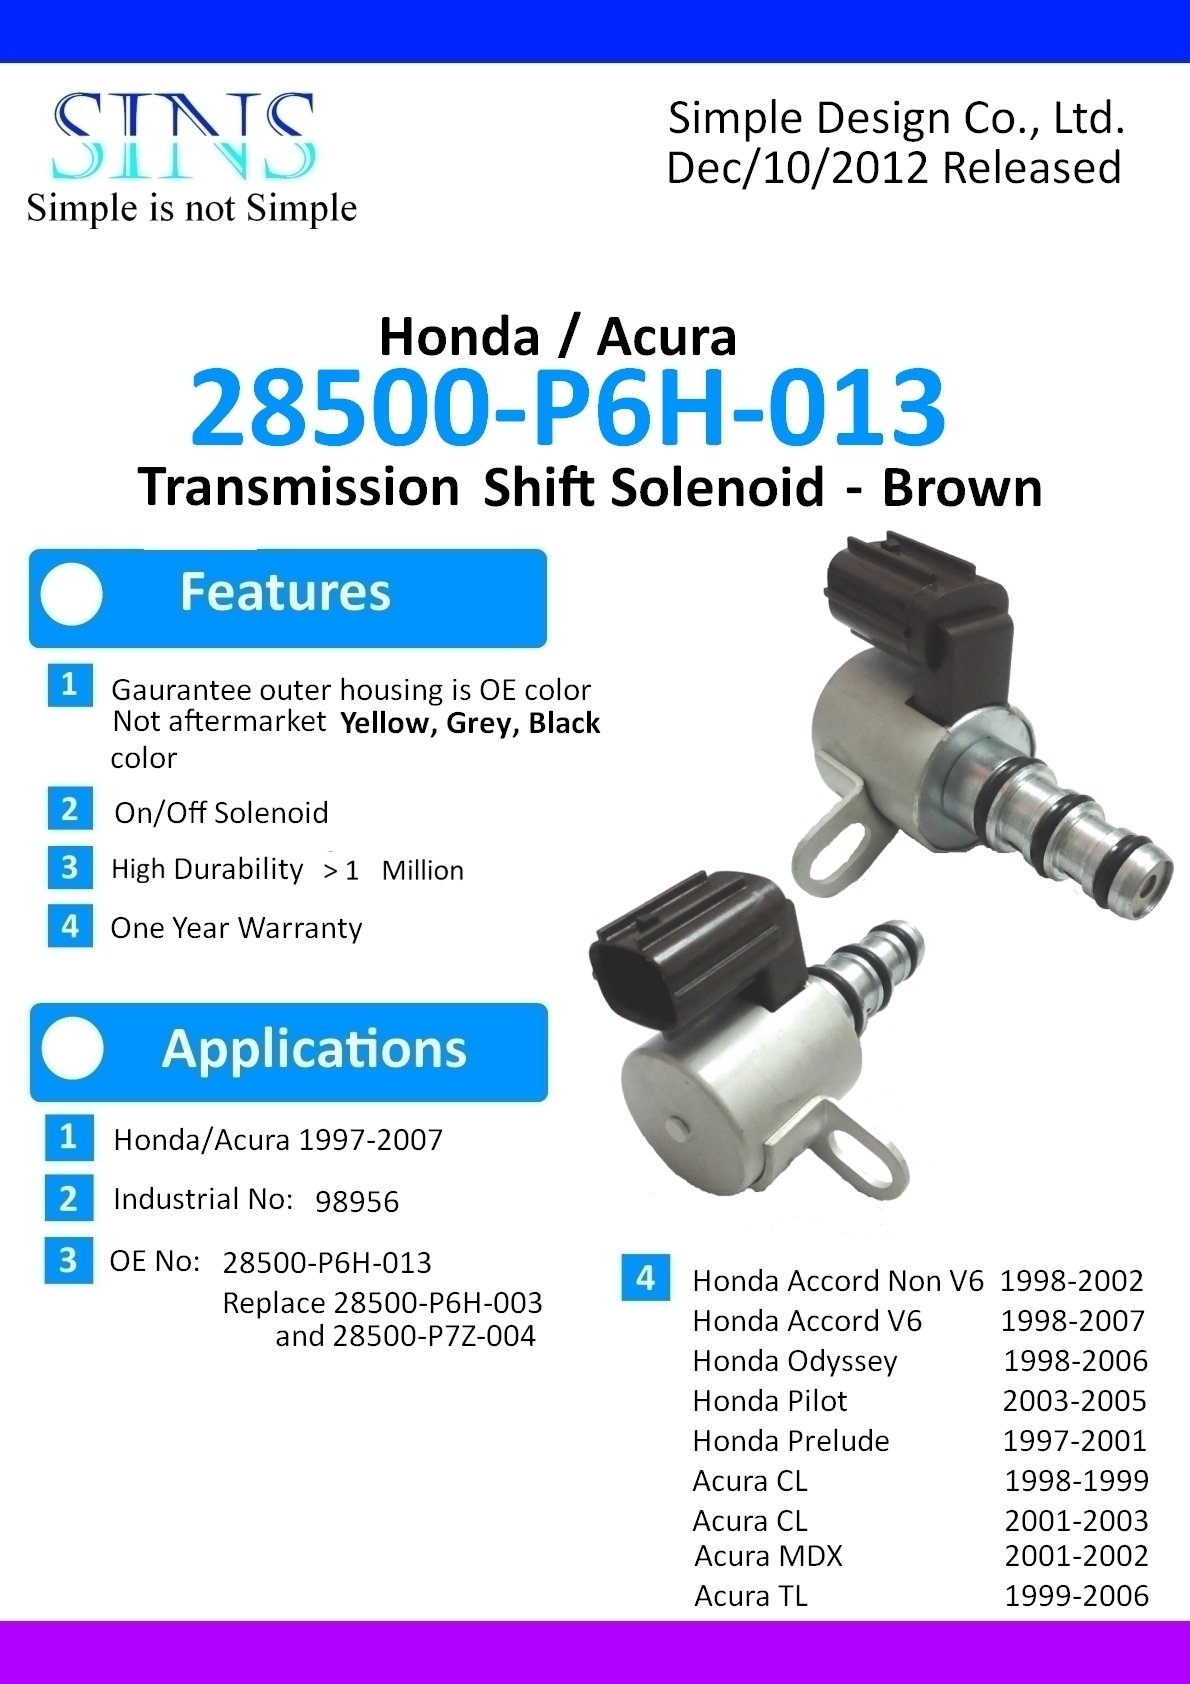 SINS - Accord Odyssey Pilot Prelude CL MDX TL Transmissions Shift Solenoid Brown 28500-P6H-013 28500-P7Z-004